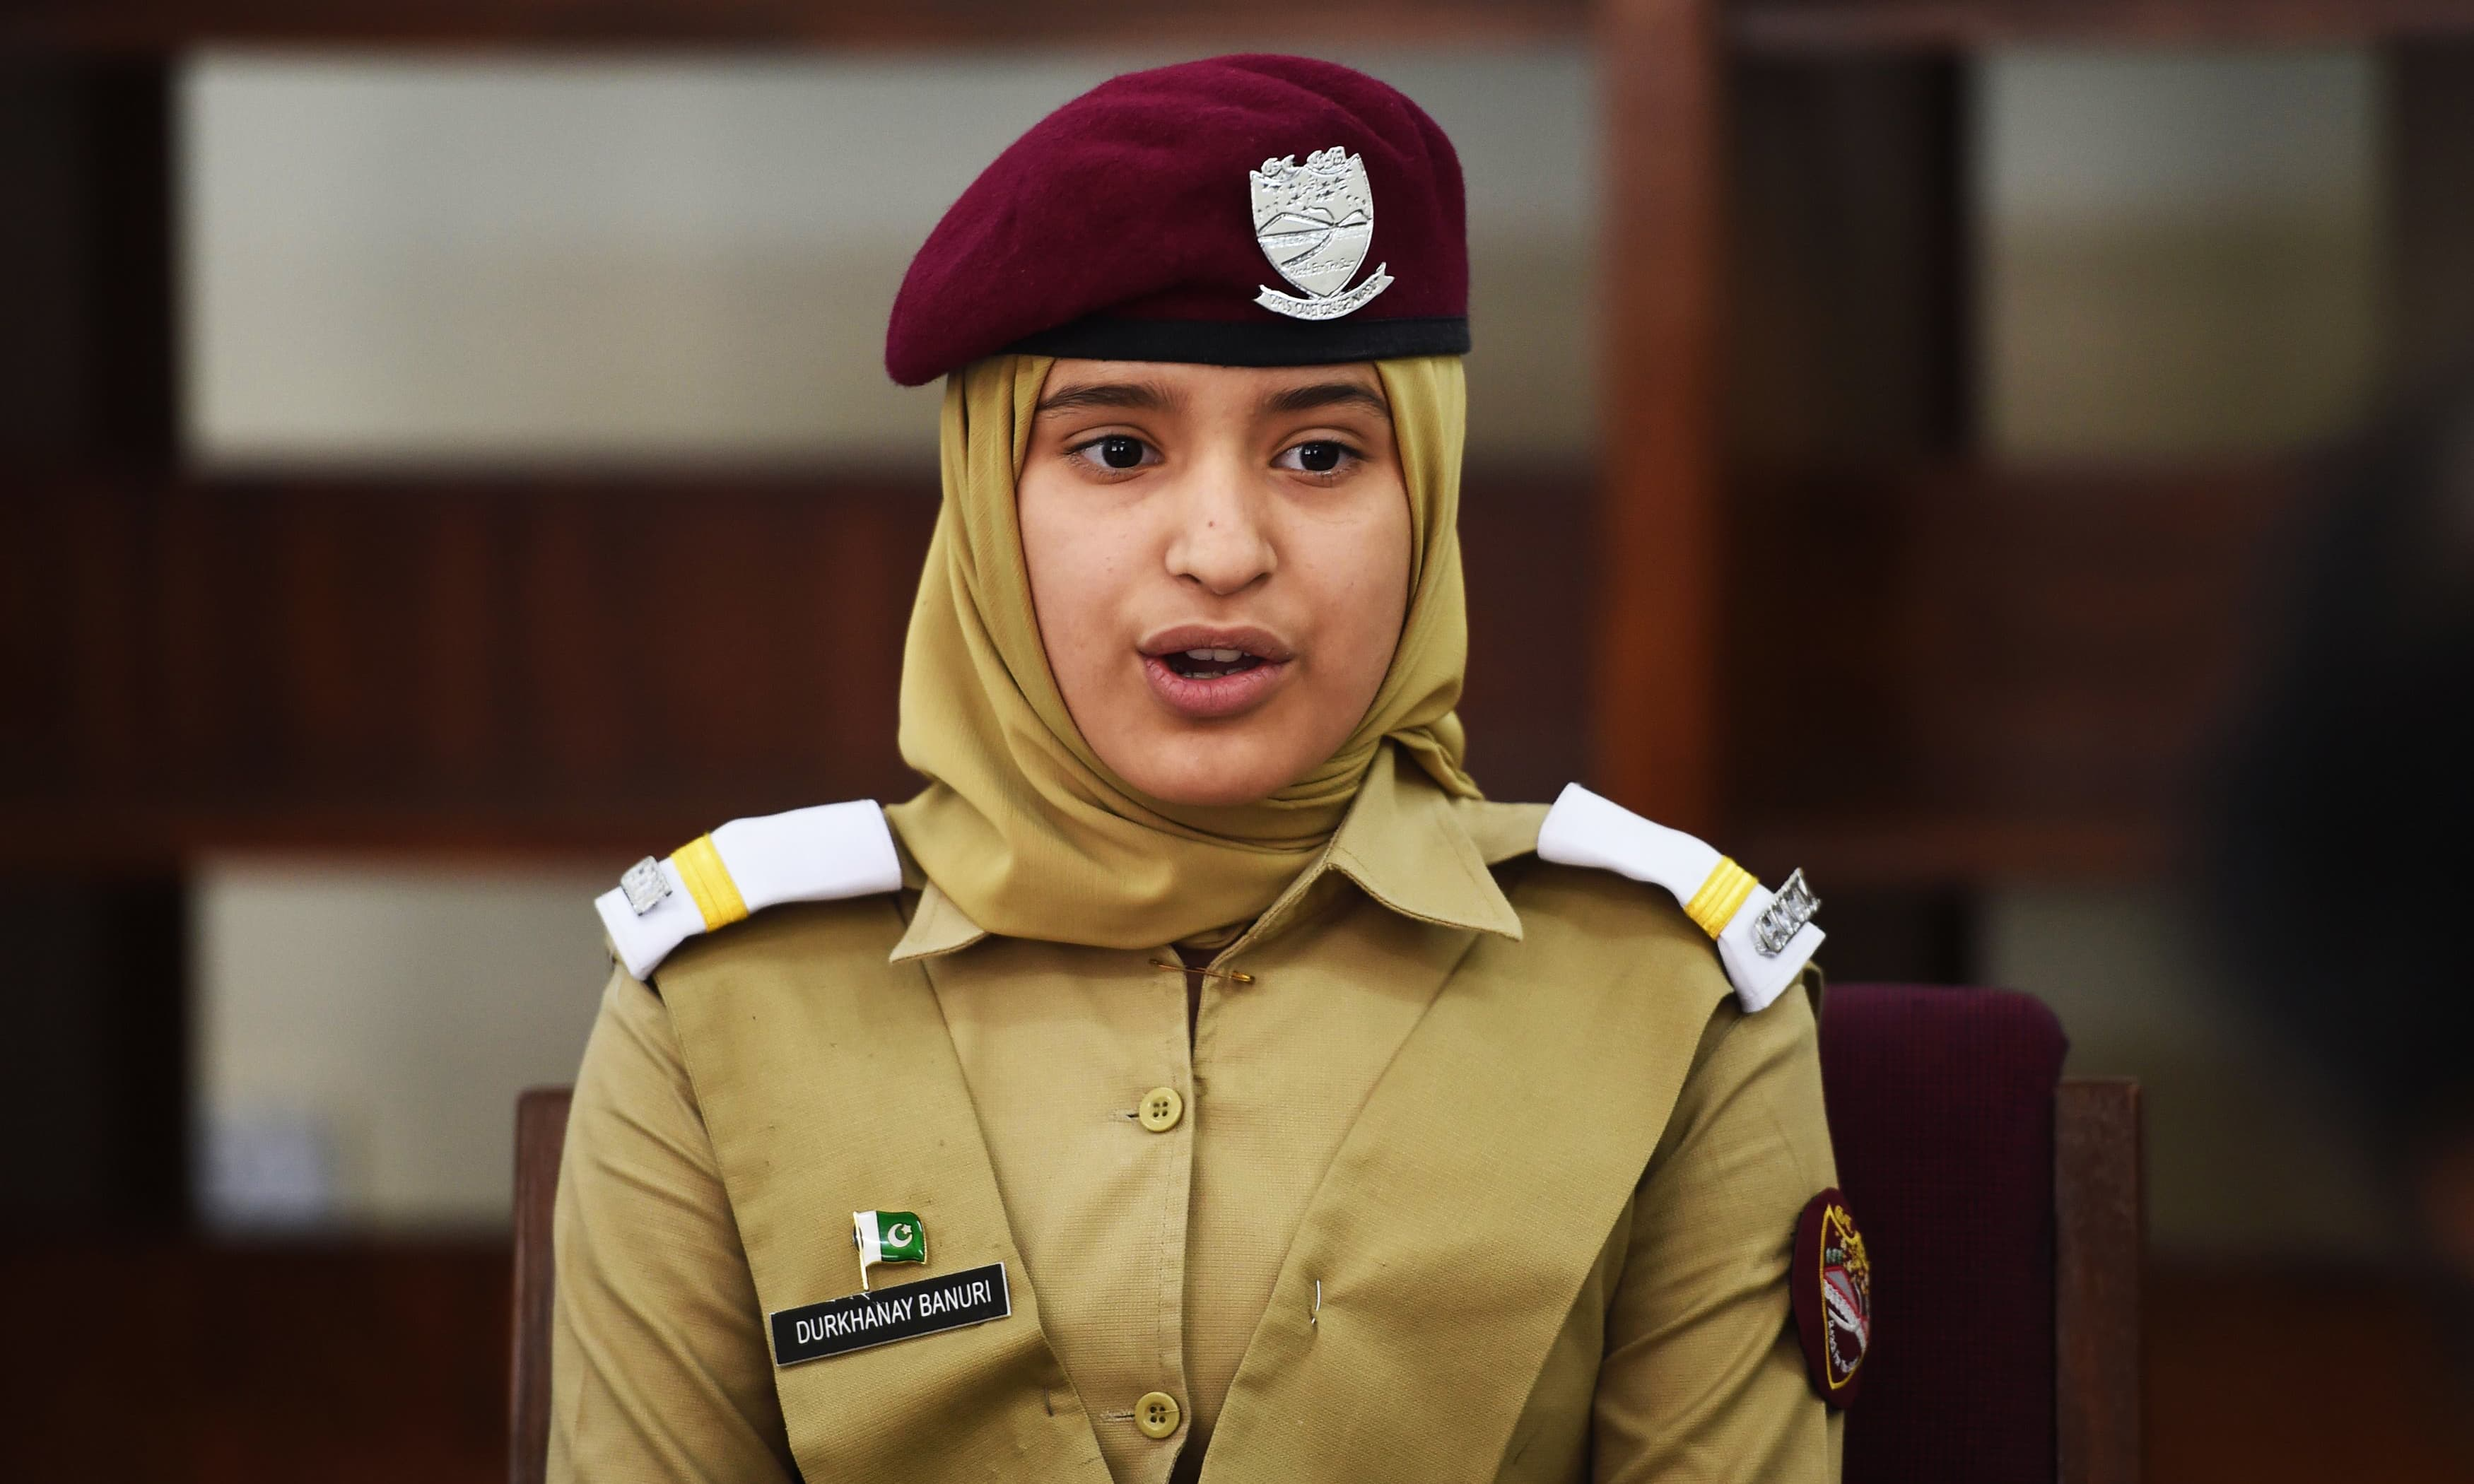 Durkhanay Banuri, a cadet, gives an interview to AFP at the Pakistan Army's first Girls' Cadet College in Mardan. —AFP